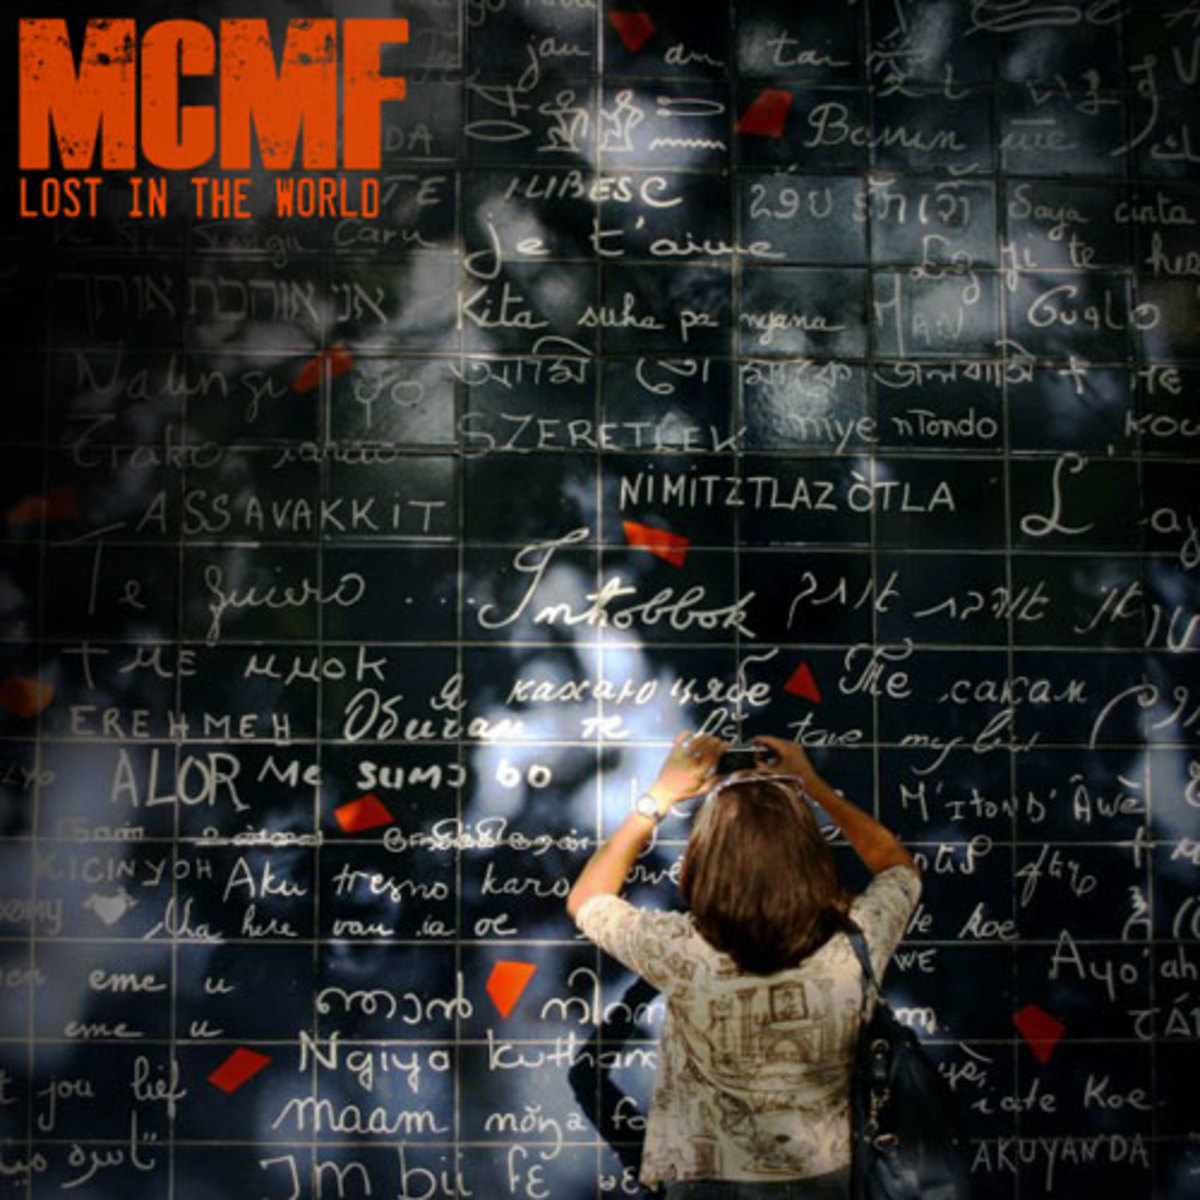 mcmf-lostintheworld.jpg